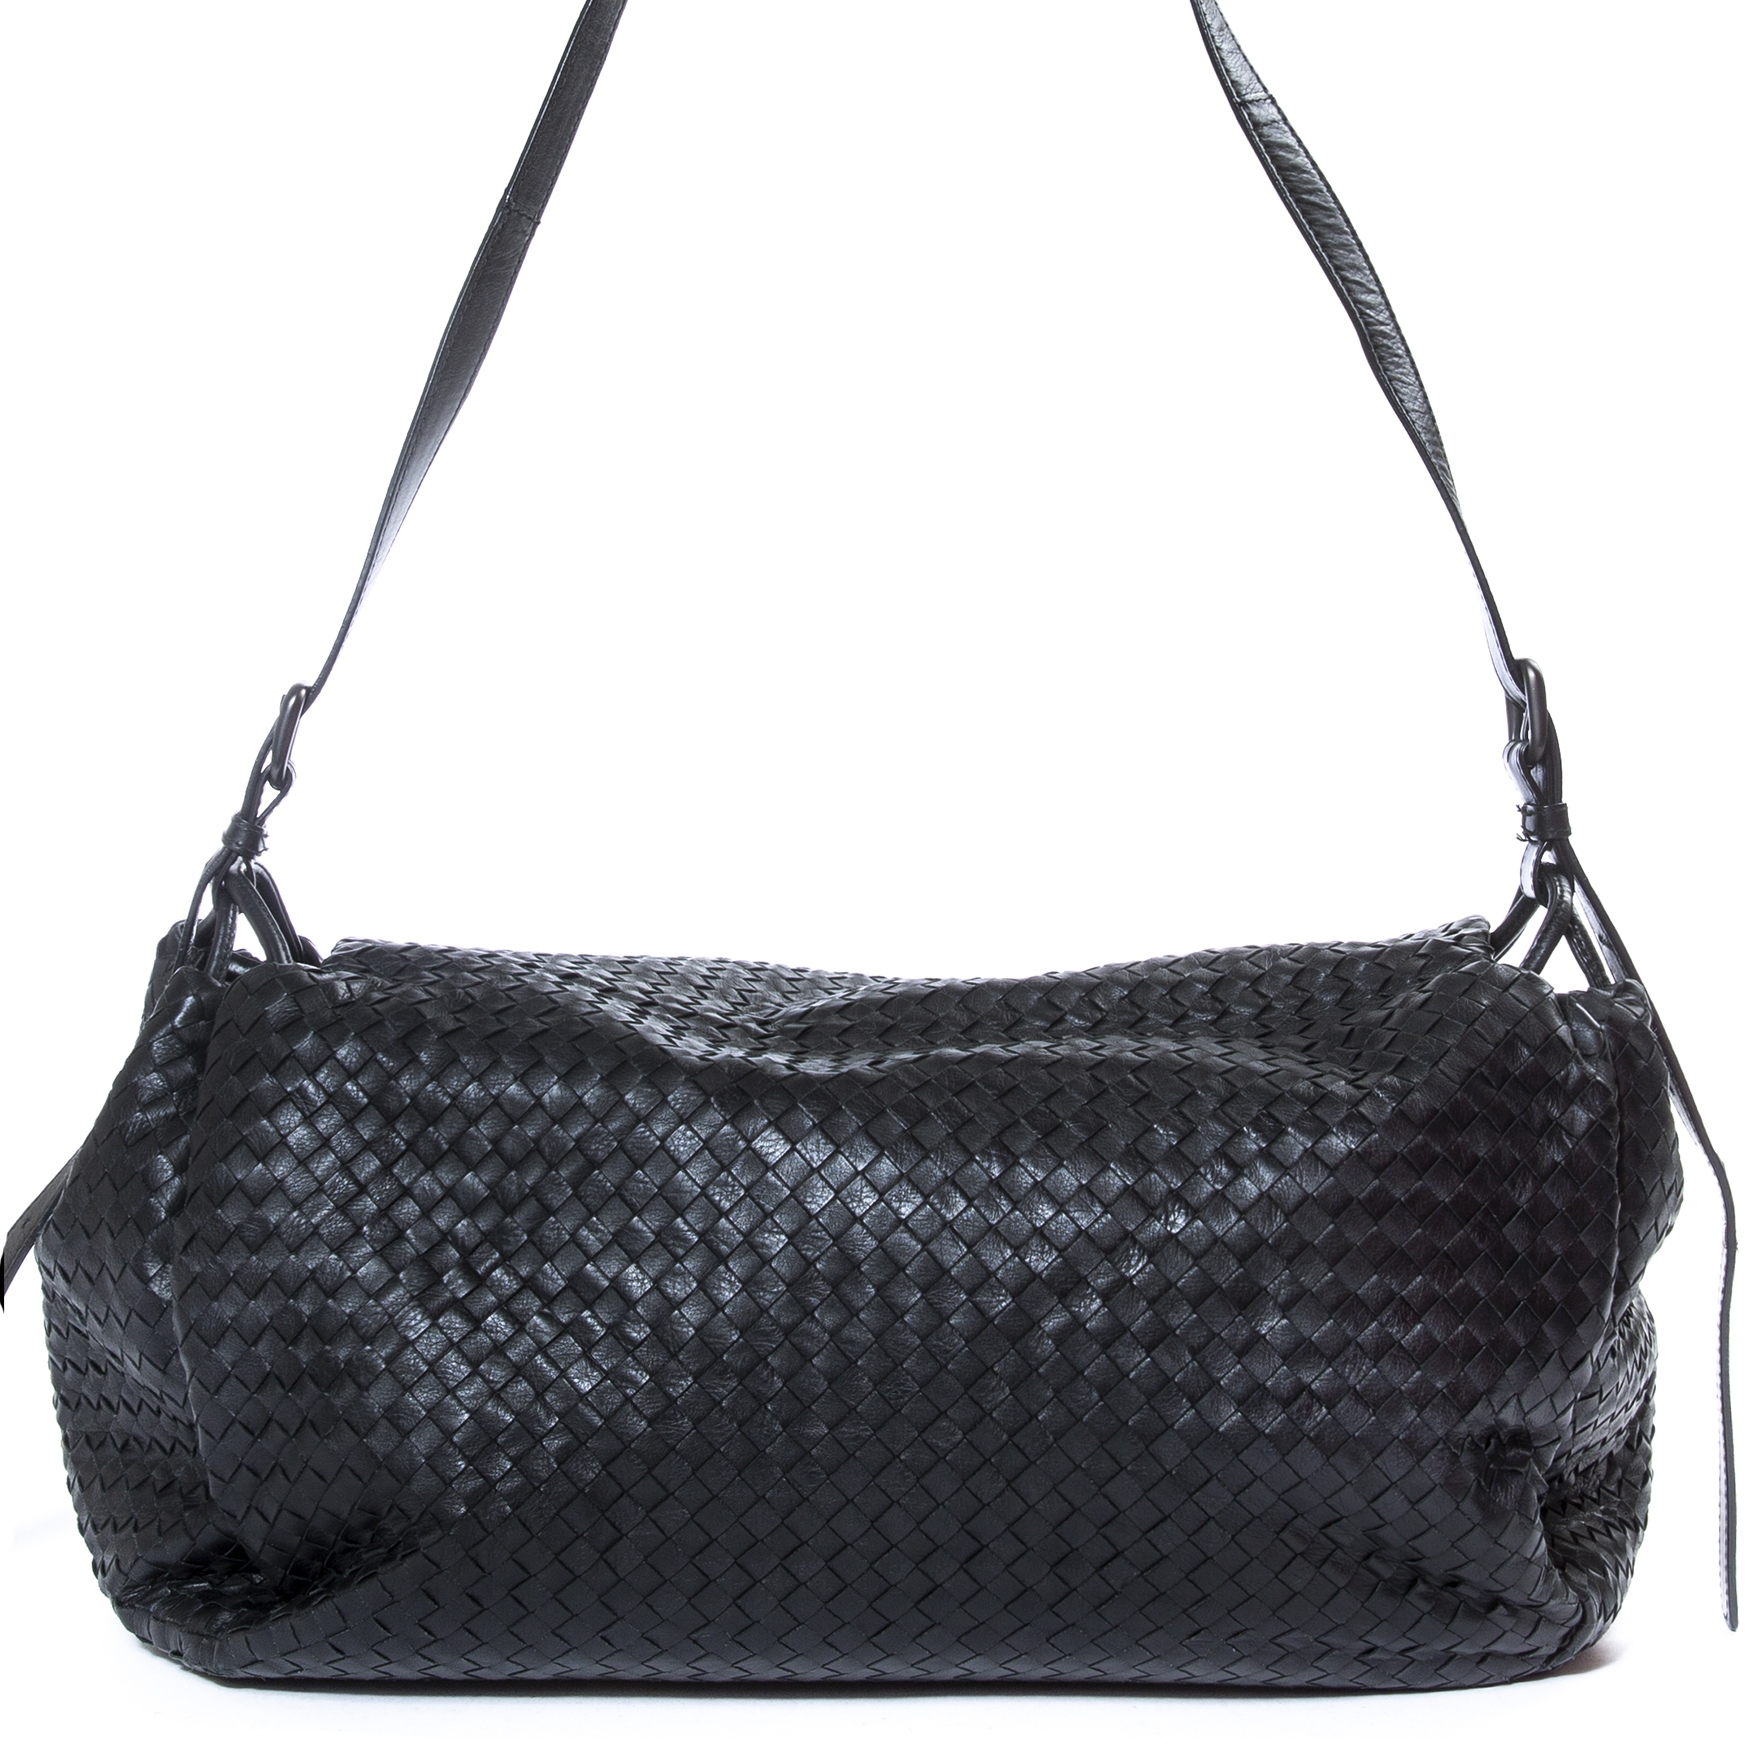 892d13ab70 ... Buy and sell your authentic Bottega Veneta Black Intrecciato Nappa  Leather Flap Shoulder Bag